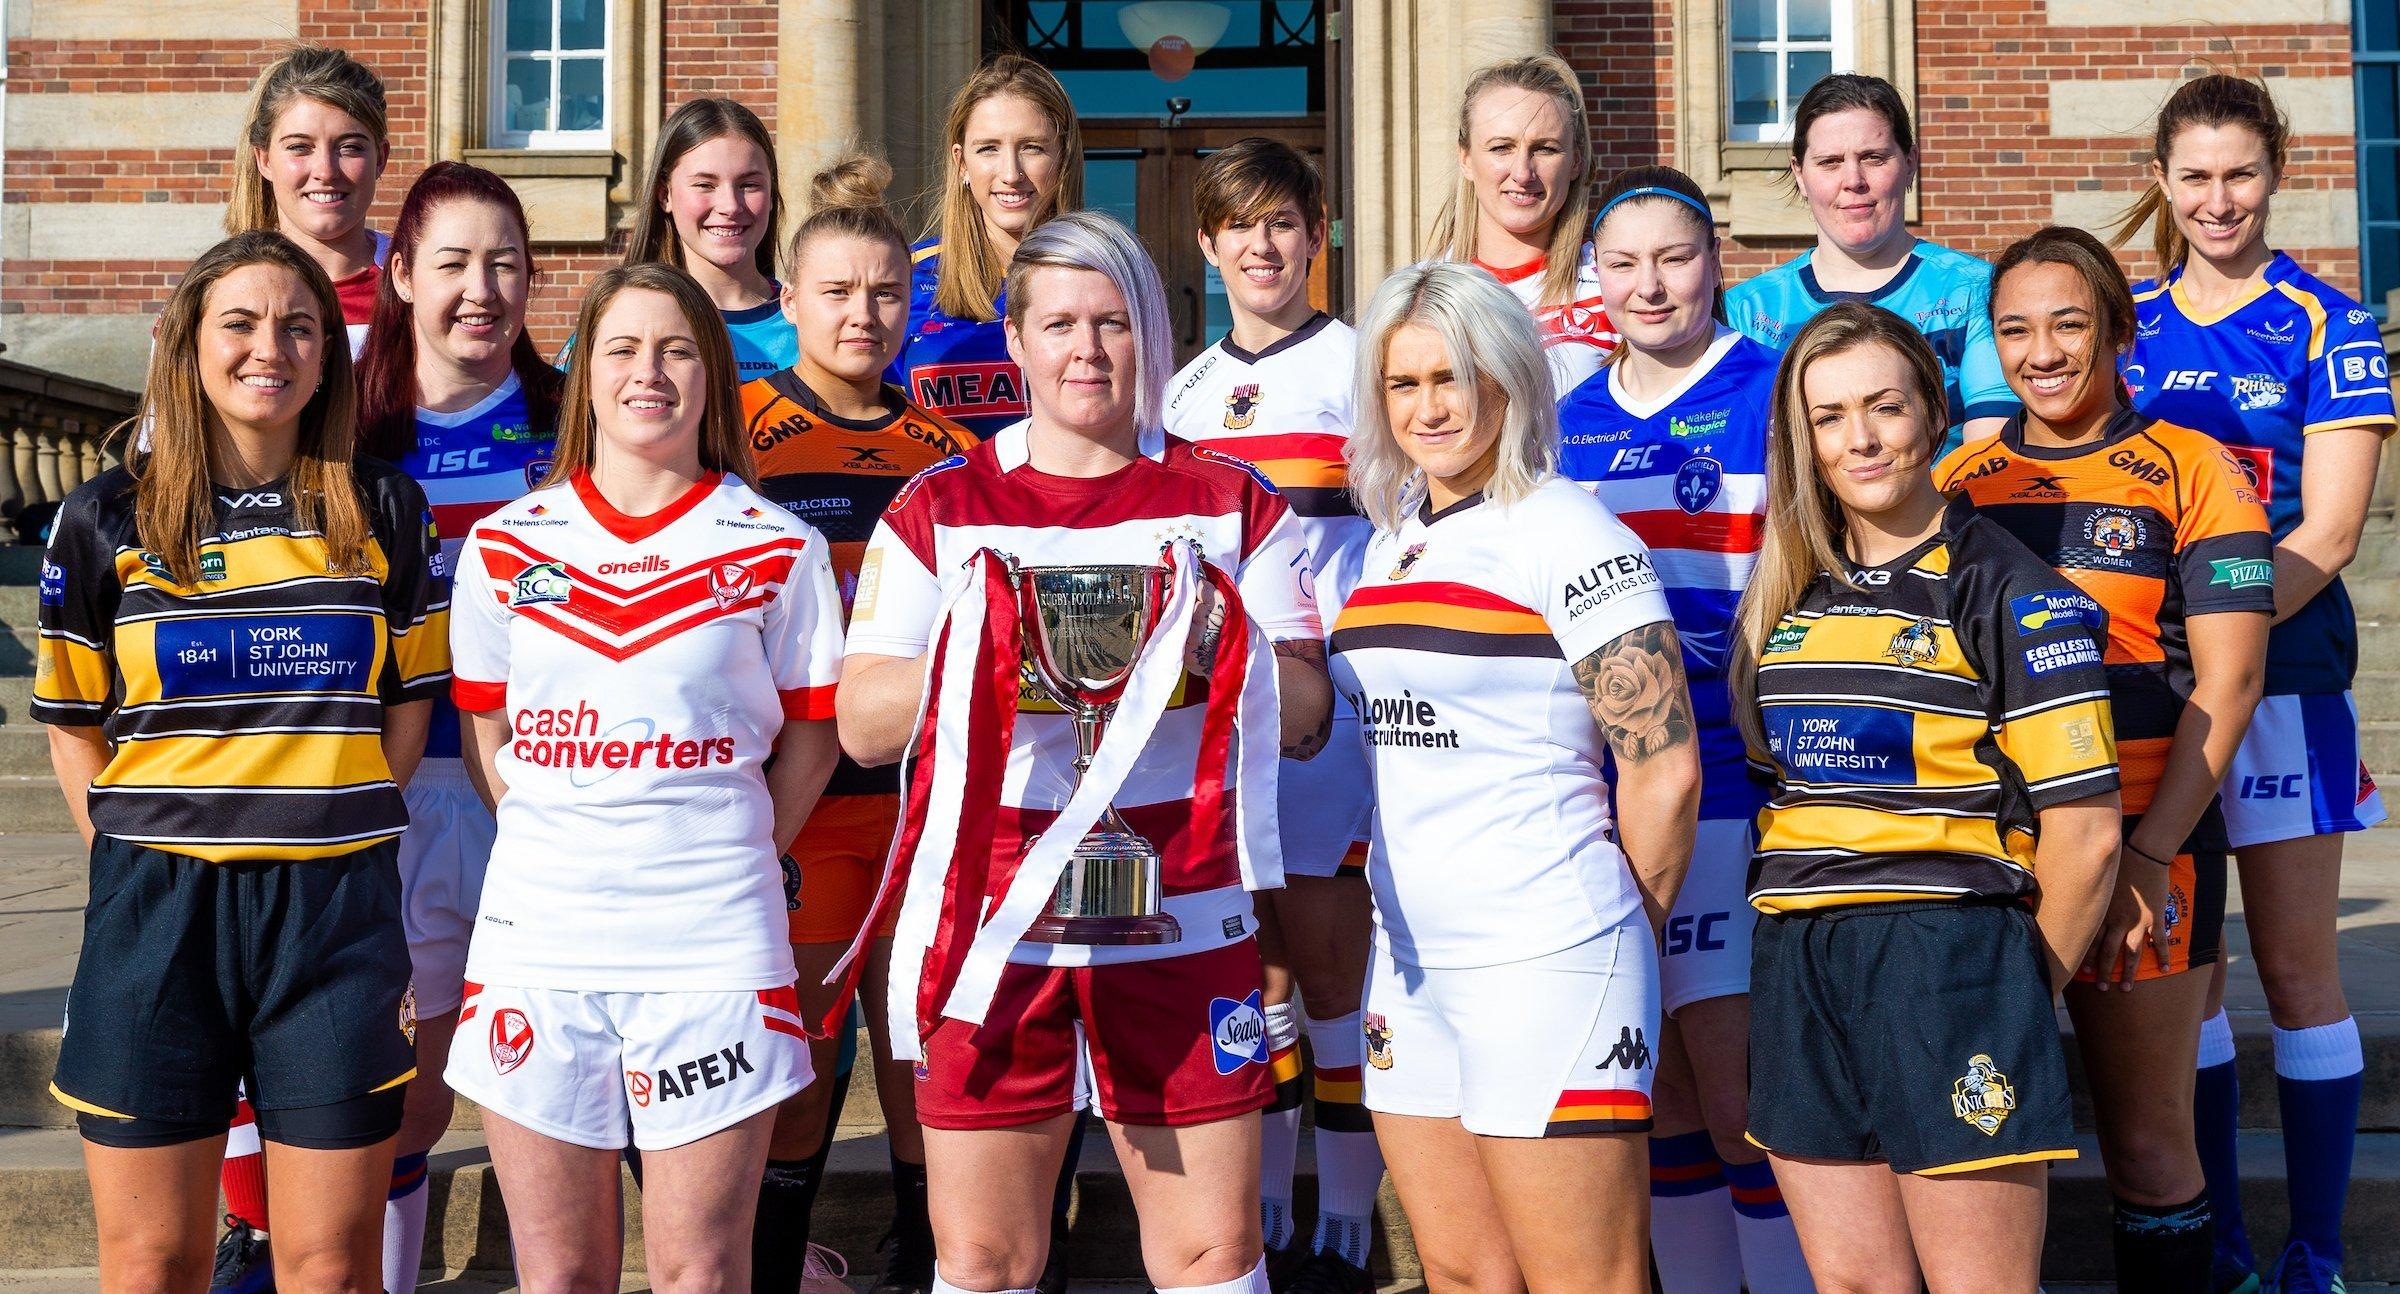 Representatives from each Women's Super League club line up as part of the launch for the 2019 season